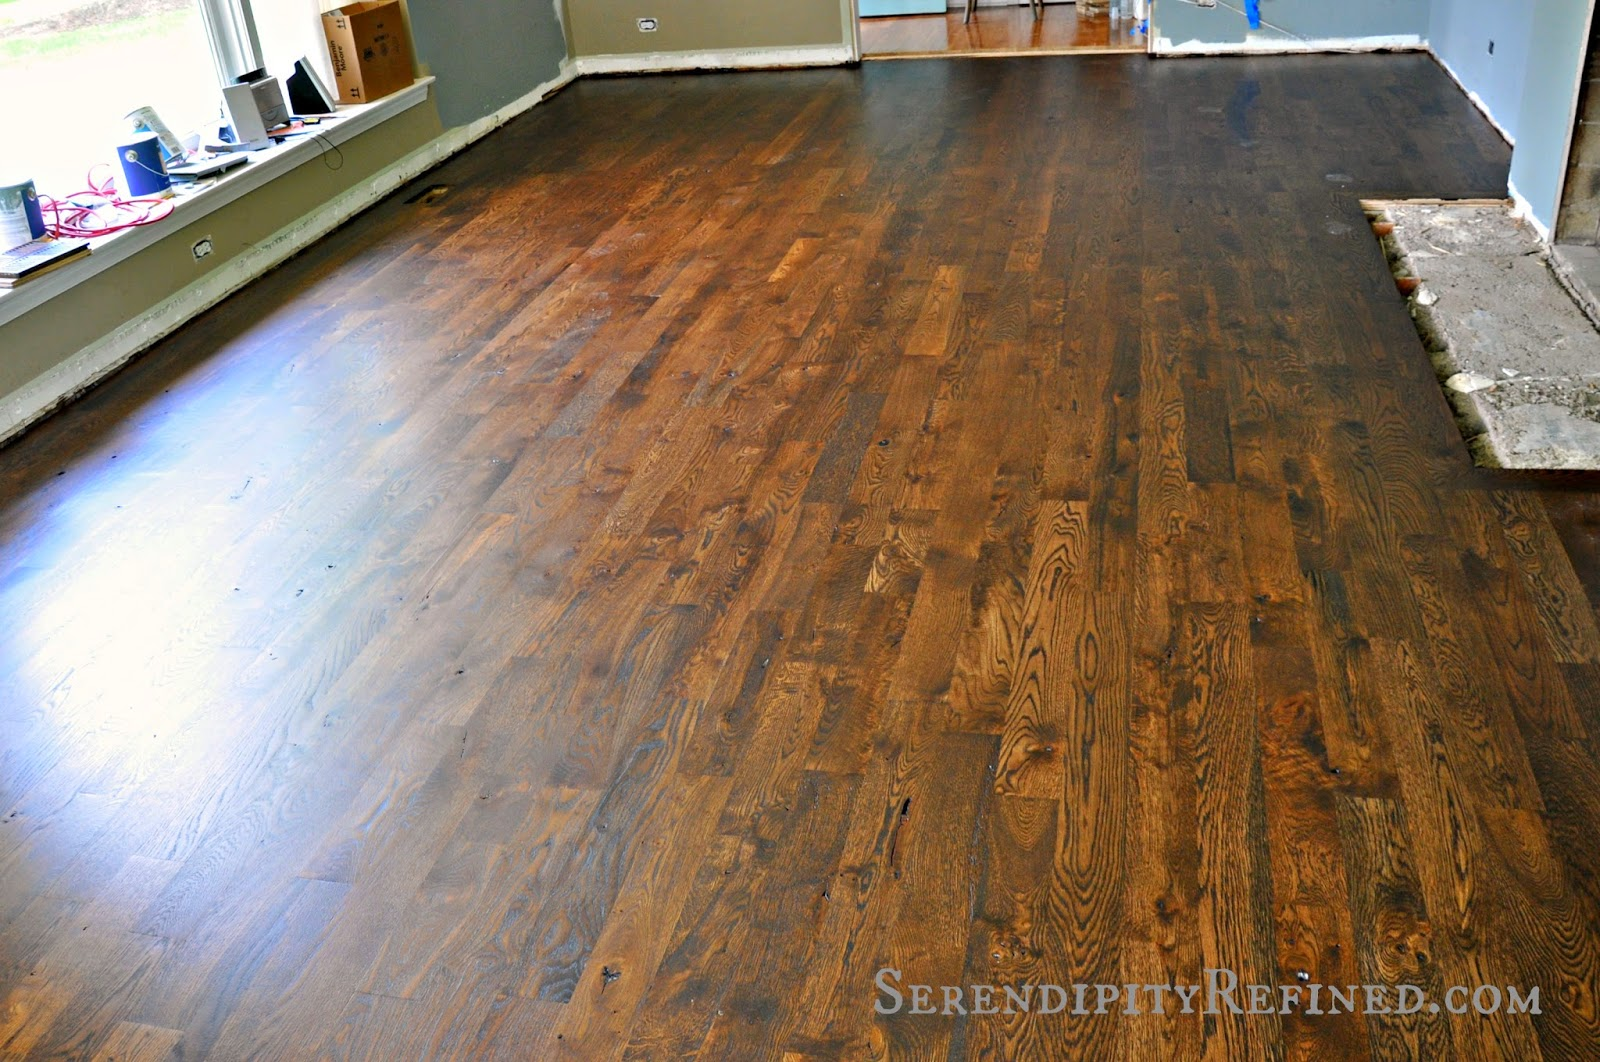 Serendipity Refined Blog: How to Choose Hardwood Floor and ...